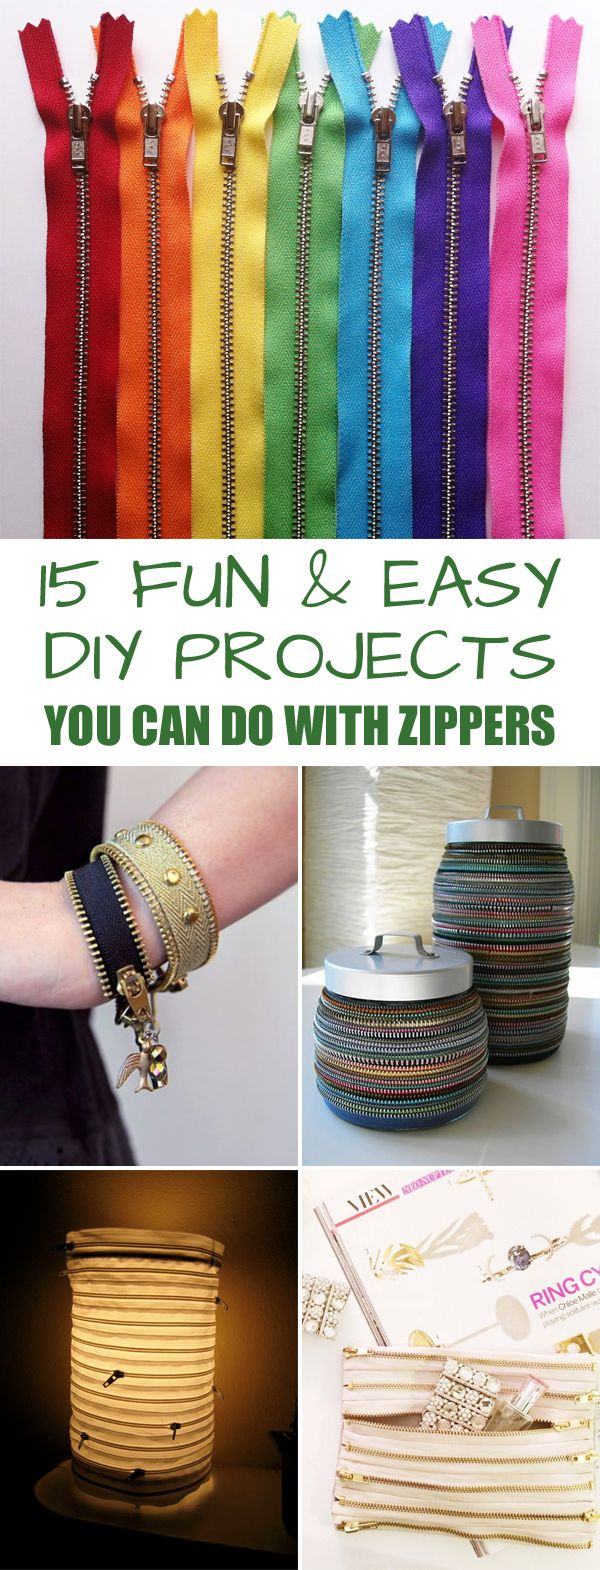 15 Fun and Easy DIY Projects You Can Do with Zippers